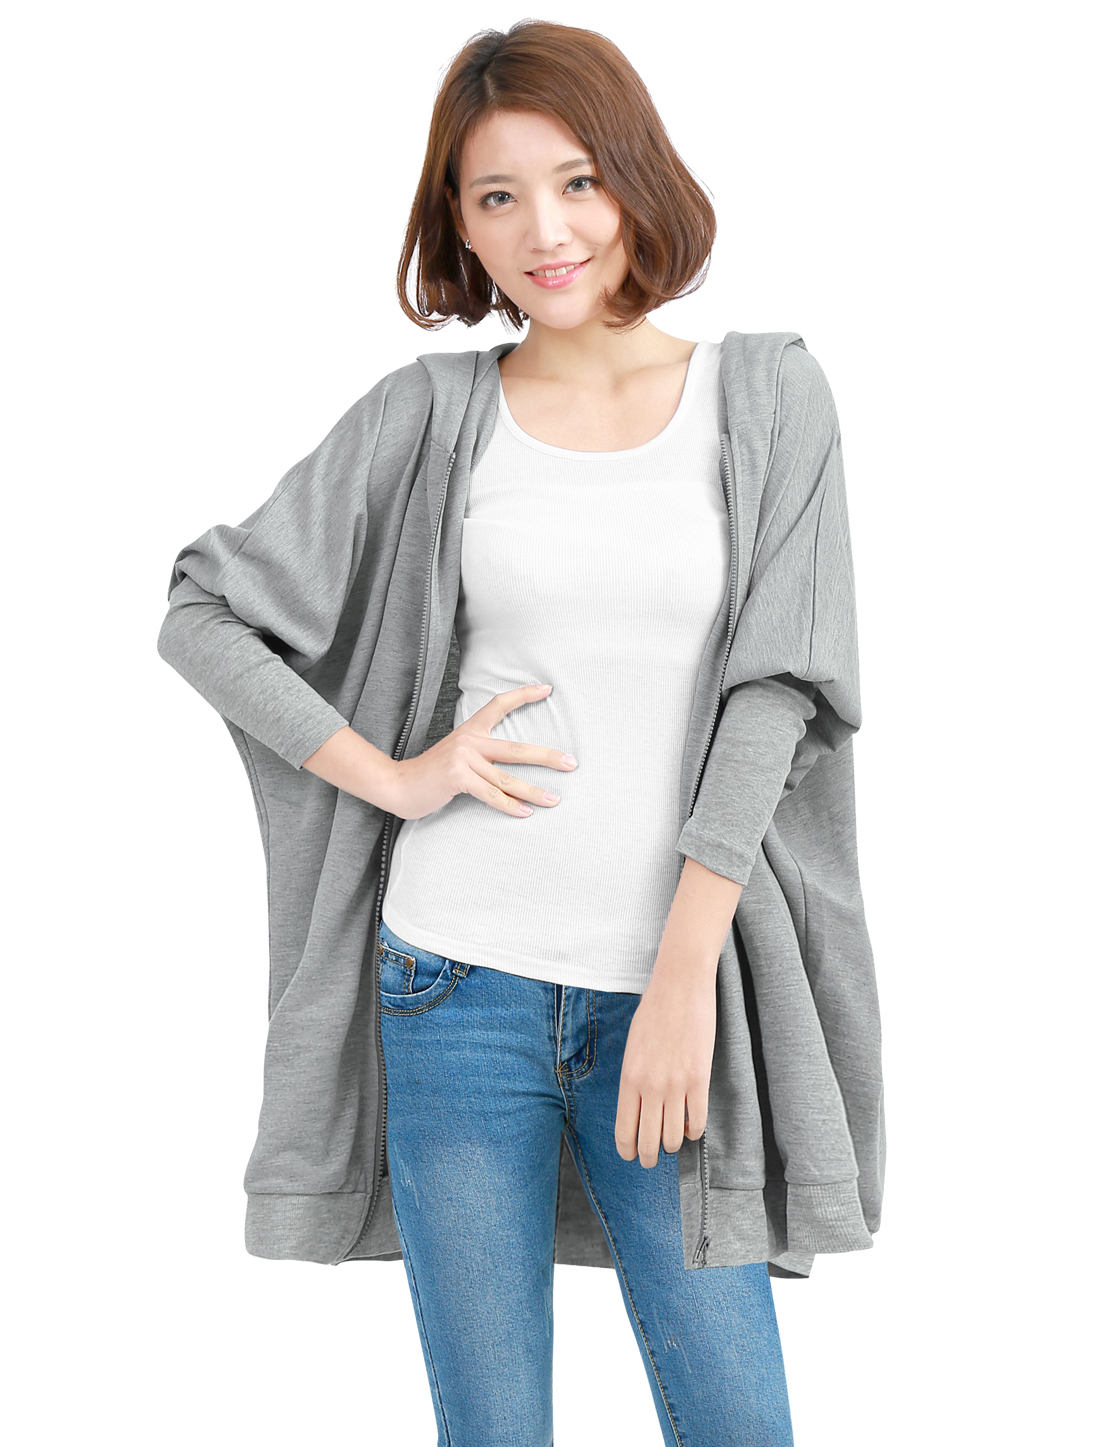 Women Zip-Up Front Closure Long Batwing Sleeve Light Gray Coat L